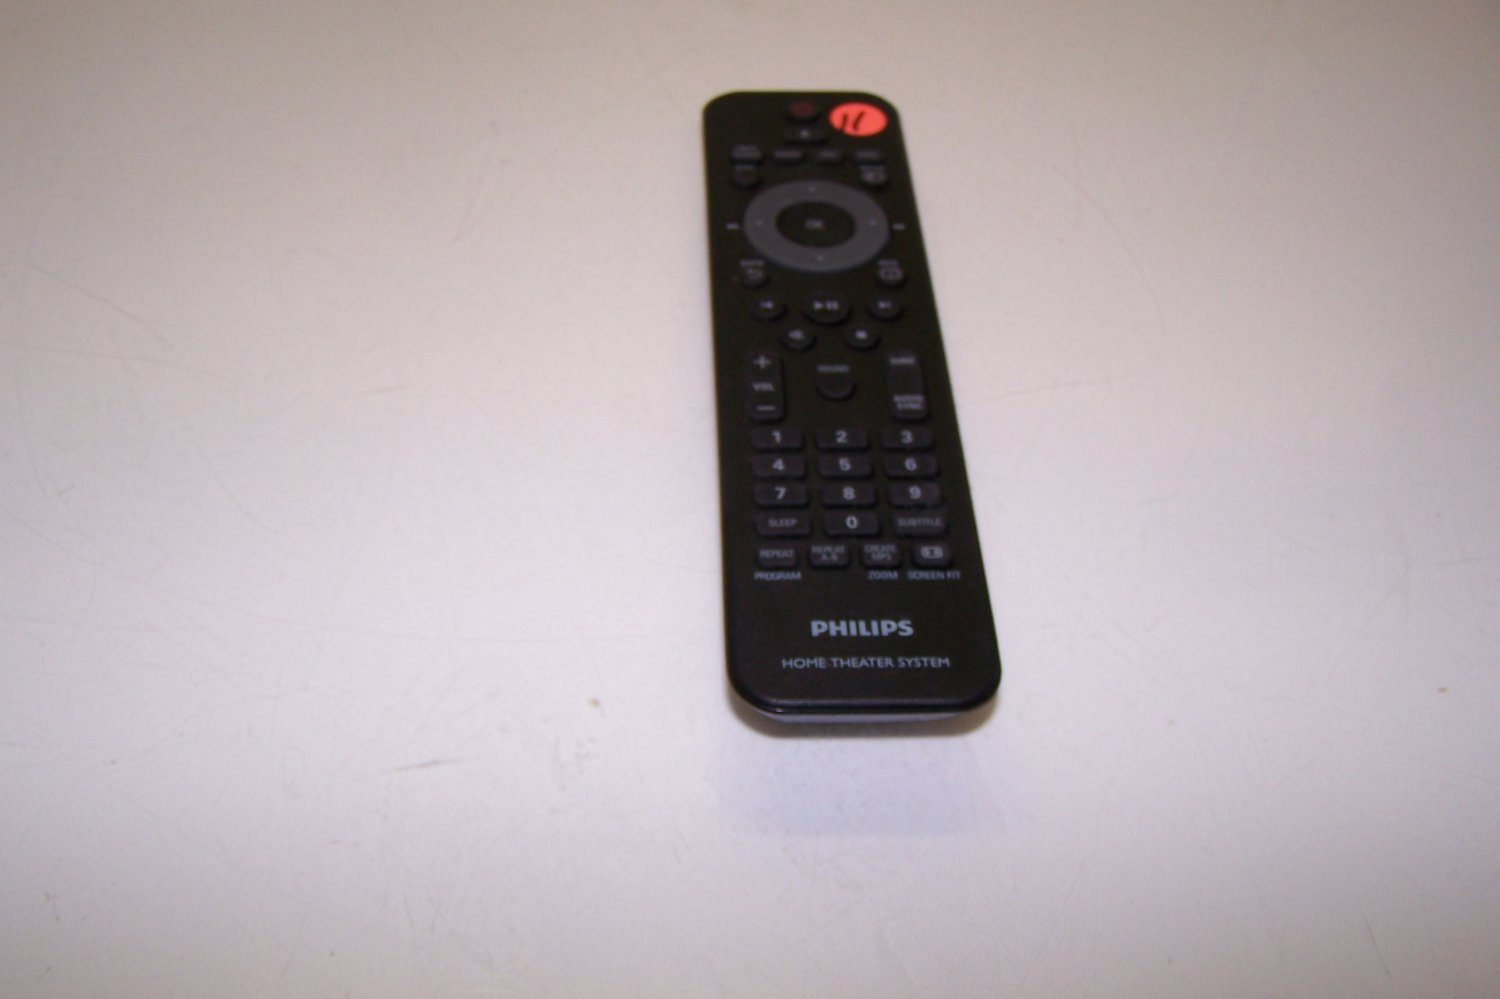 PHILIPS HOME THEATER REMOTE CONTROL 996510021121